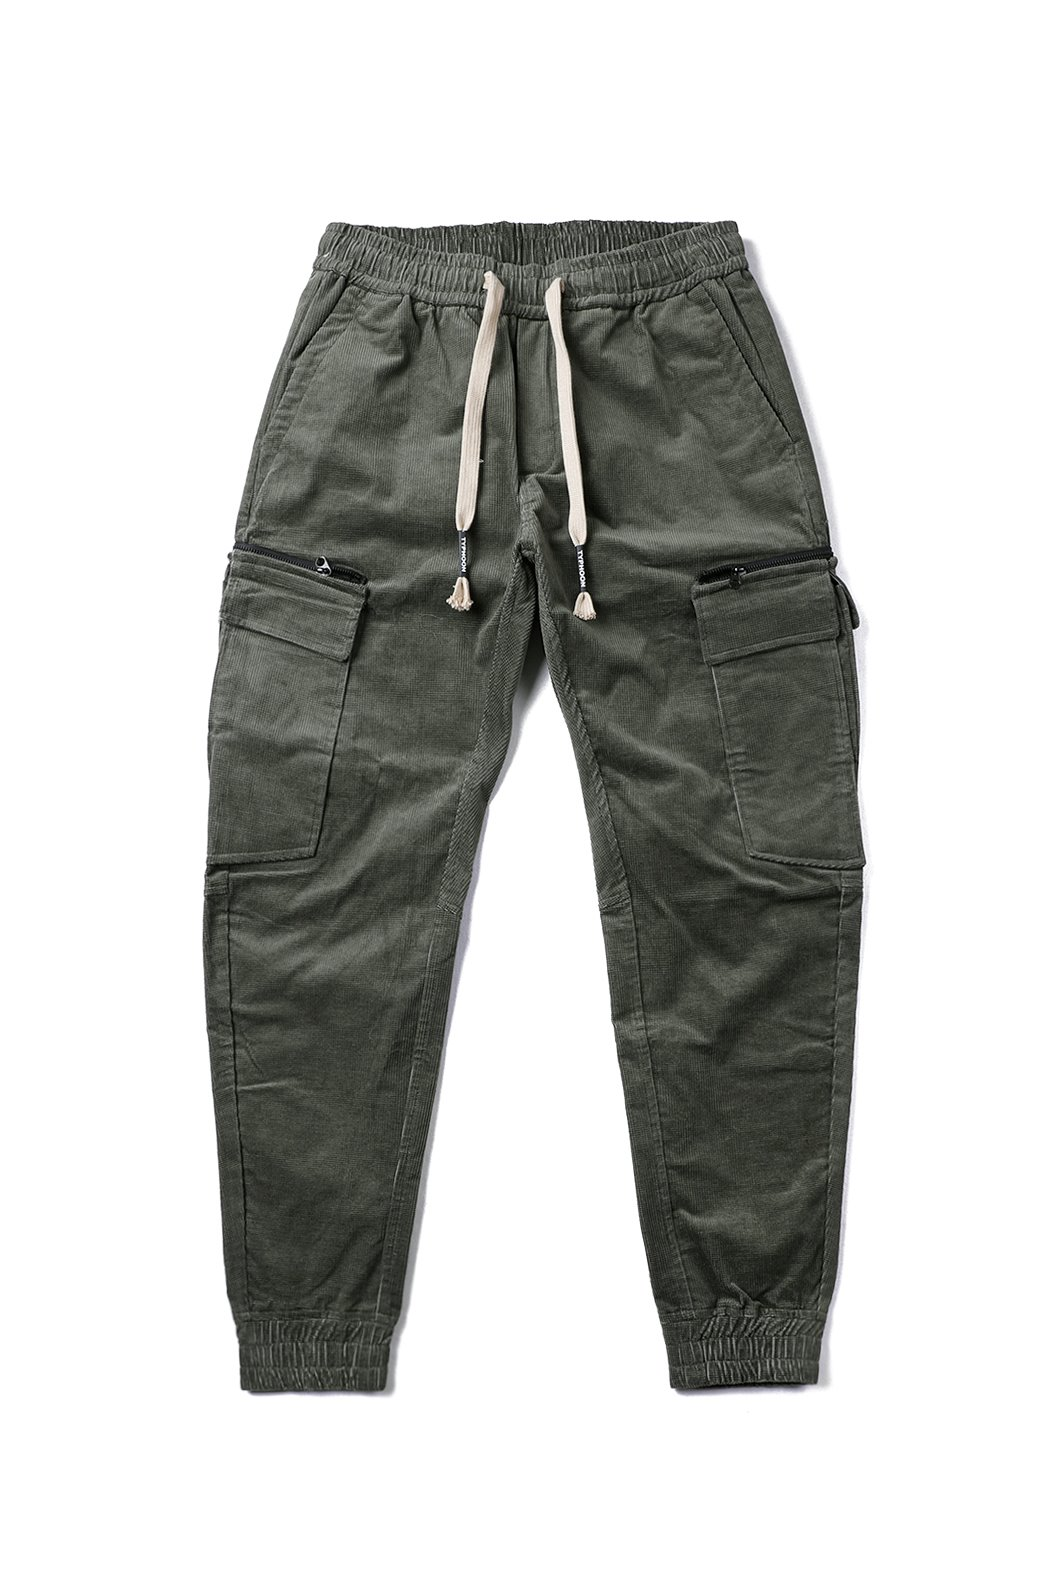 Typhoon corduroy cargo pants-2Color